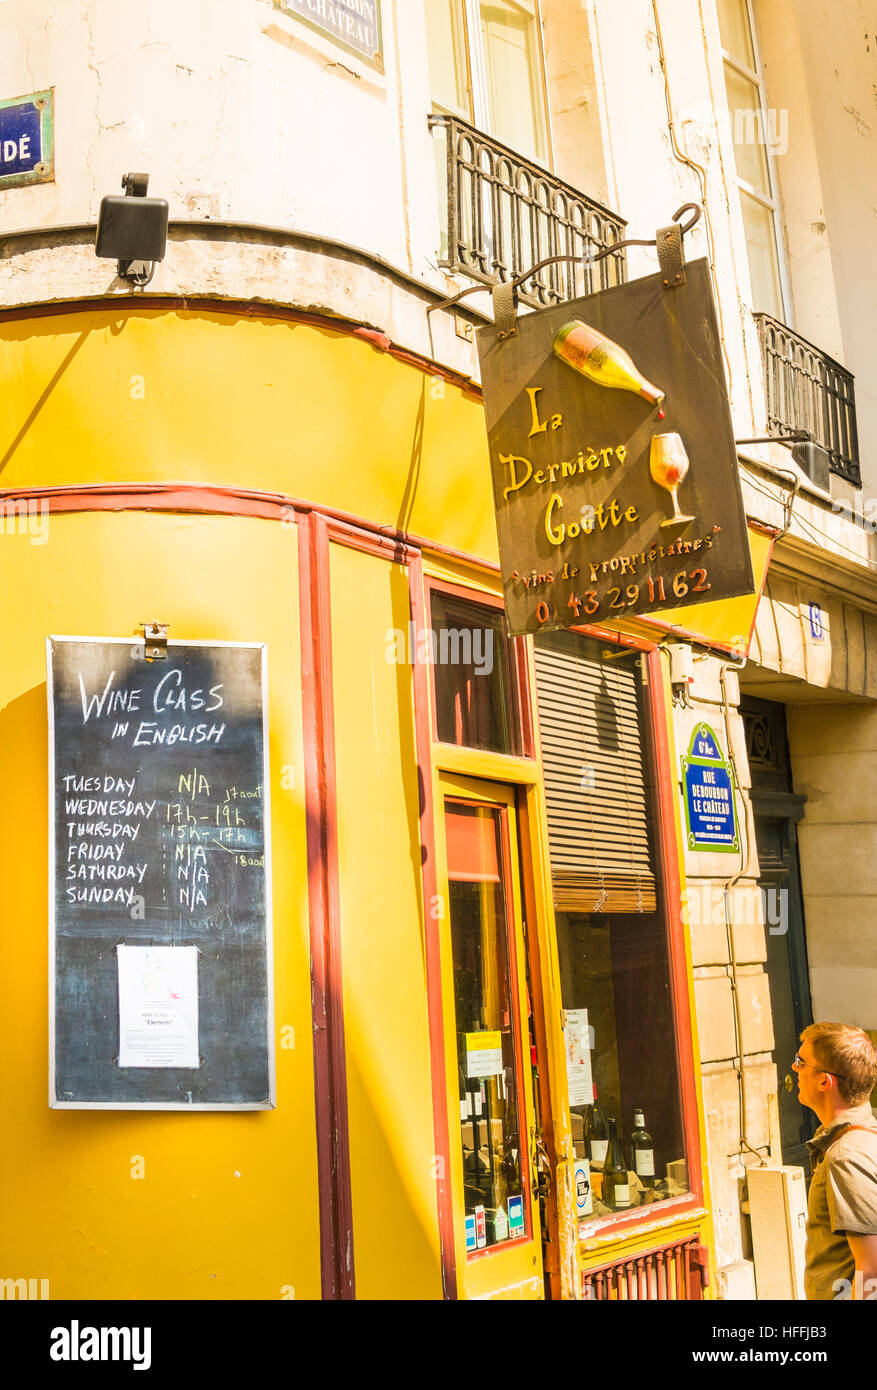 sign showing time and date of wine classes hold in english outside of wineshop la derrniere goutte - Stock Image